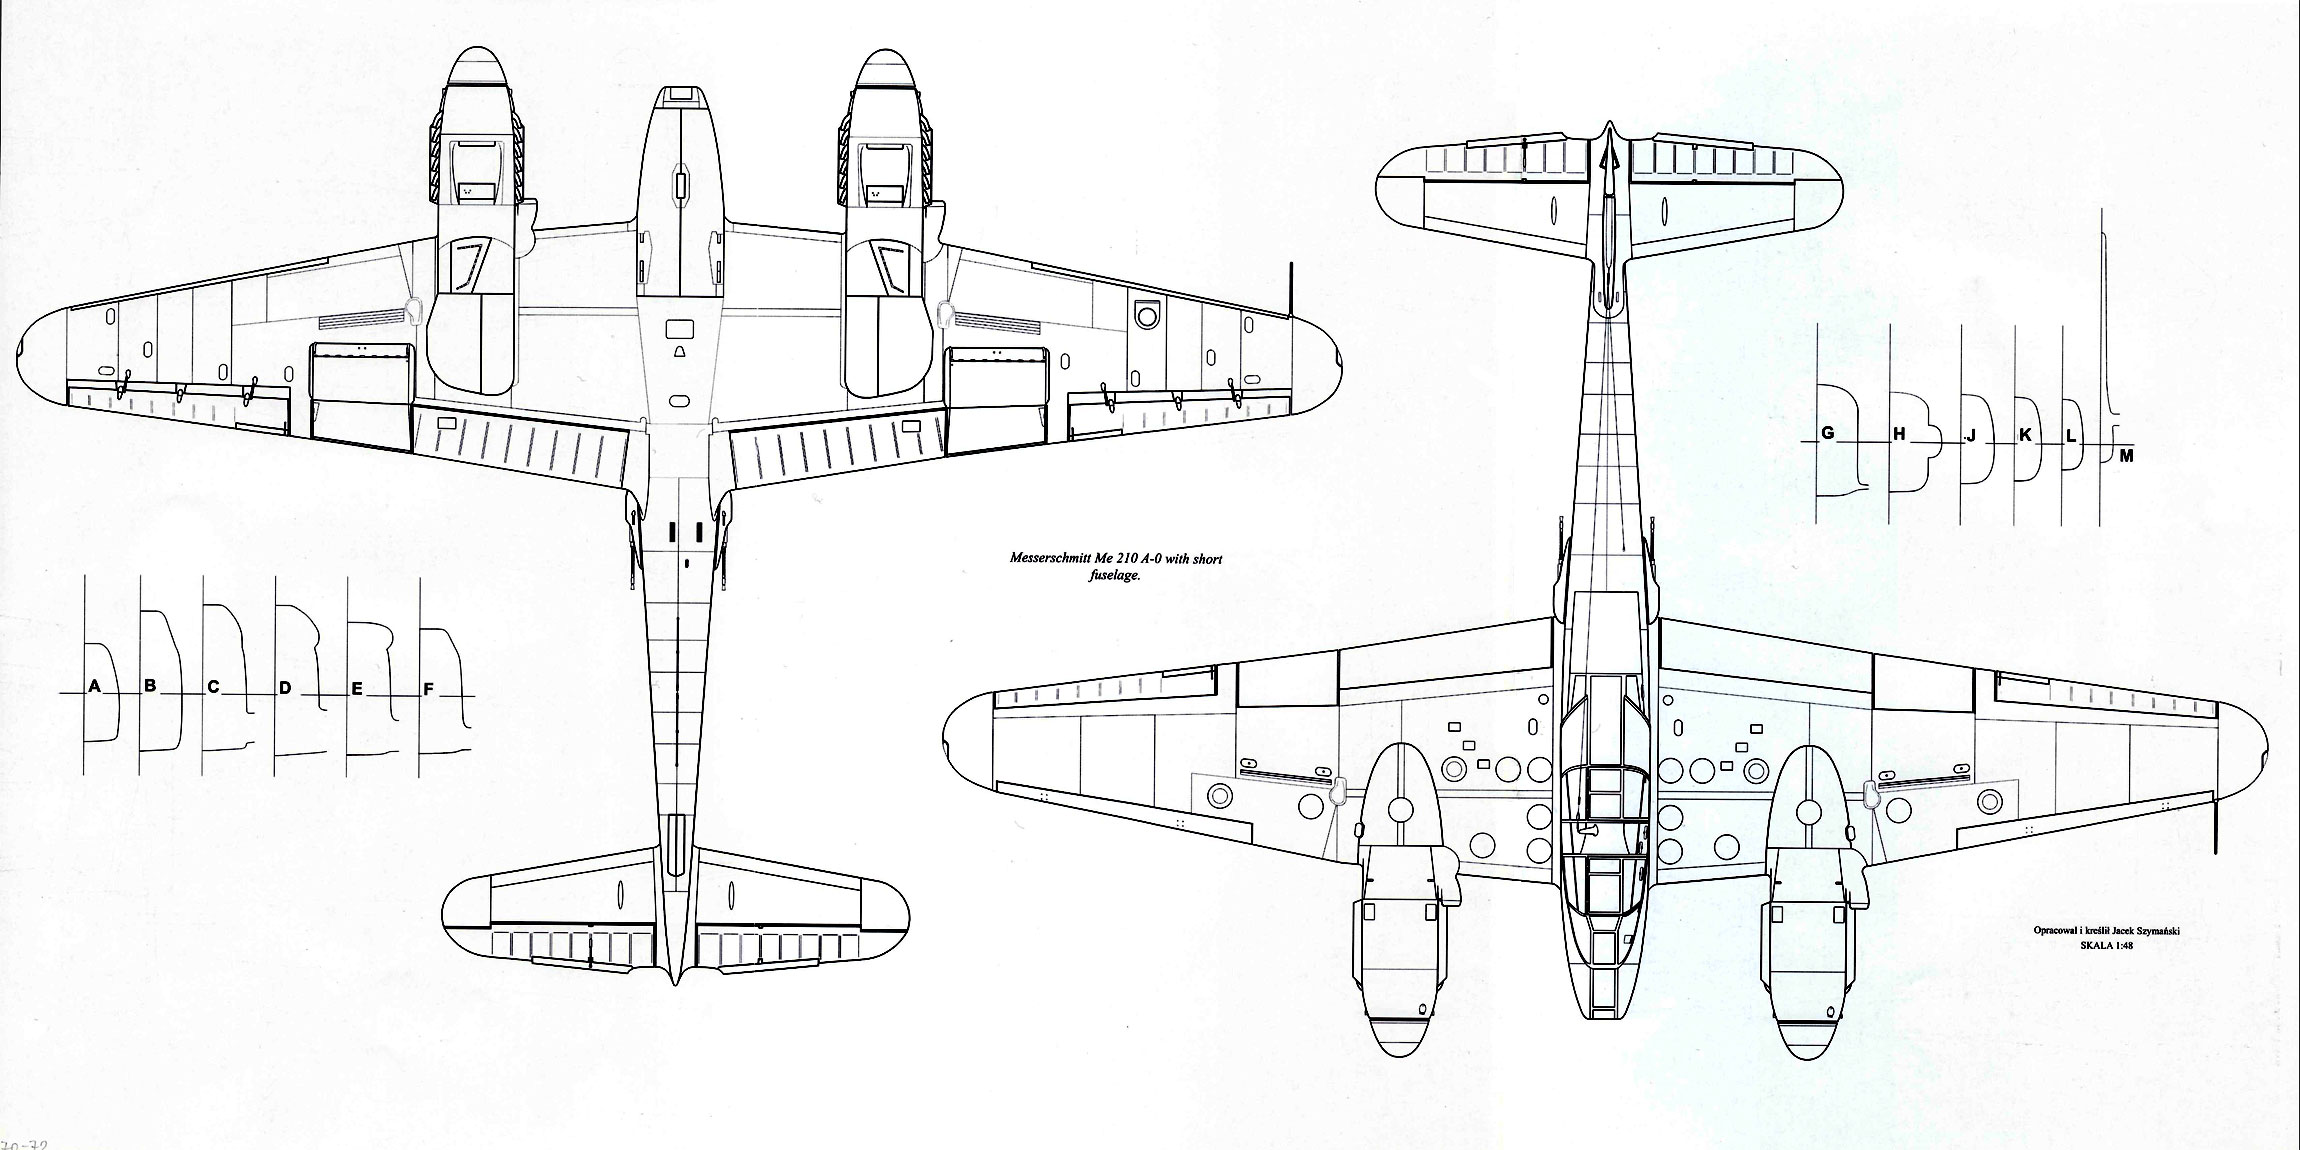 Messerschmitt Me 410A0 Hornisse 1 72 scale Line drawing 03